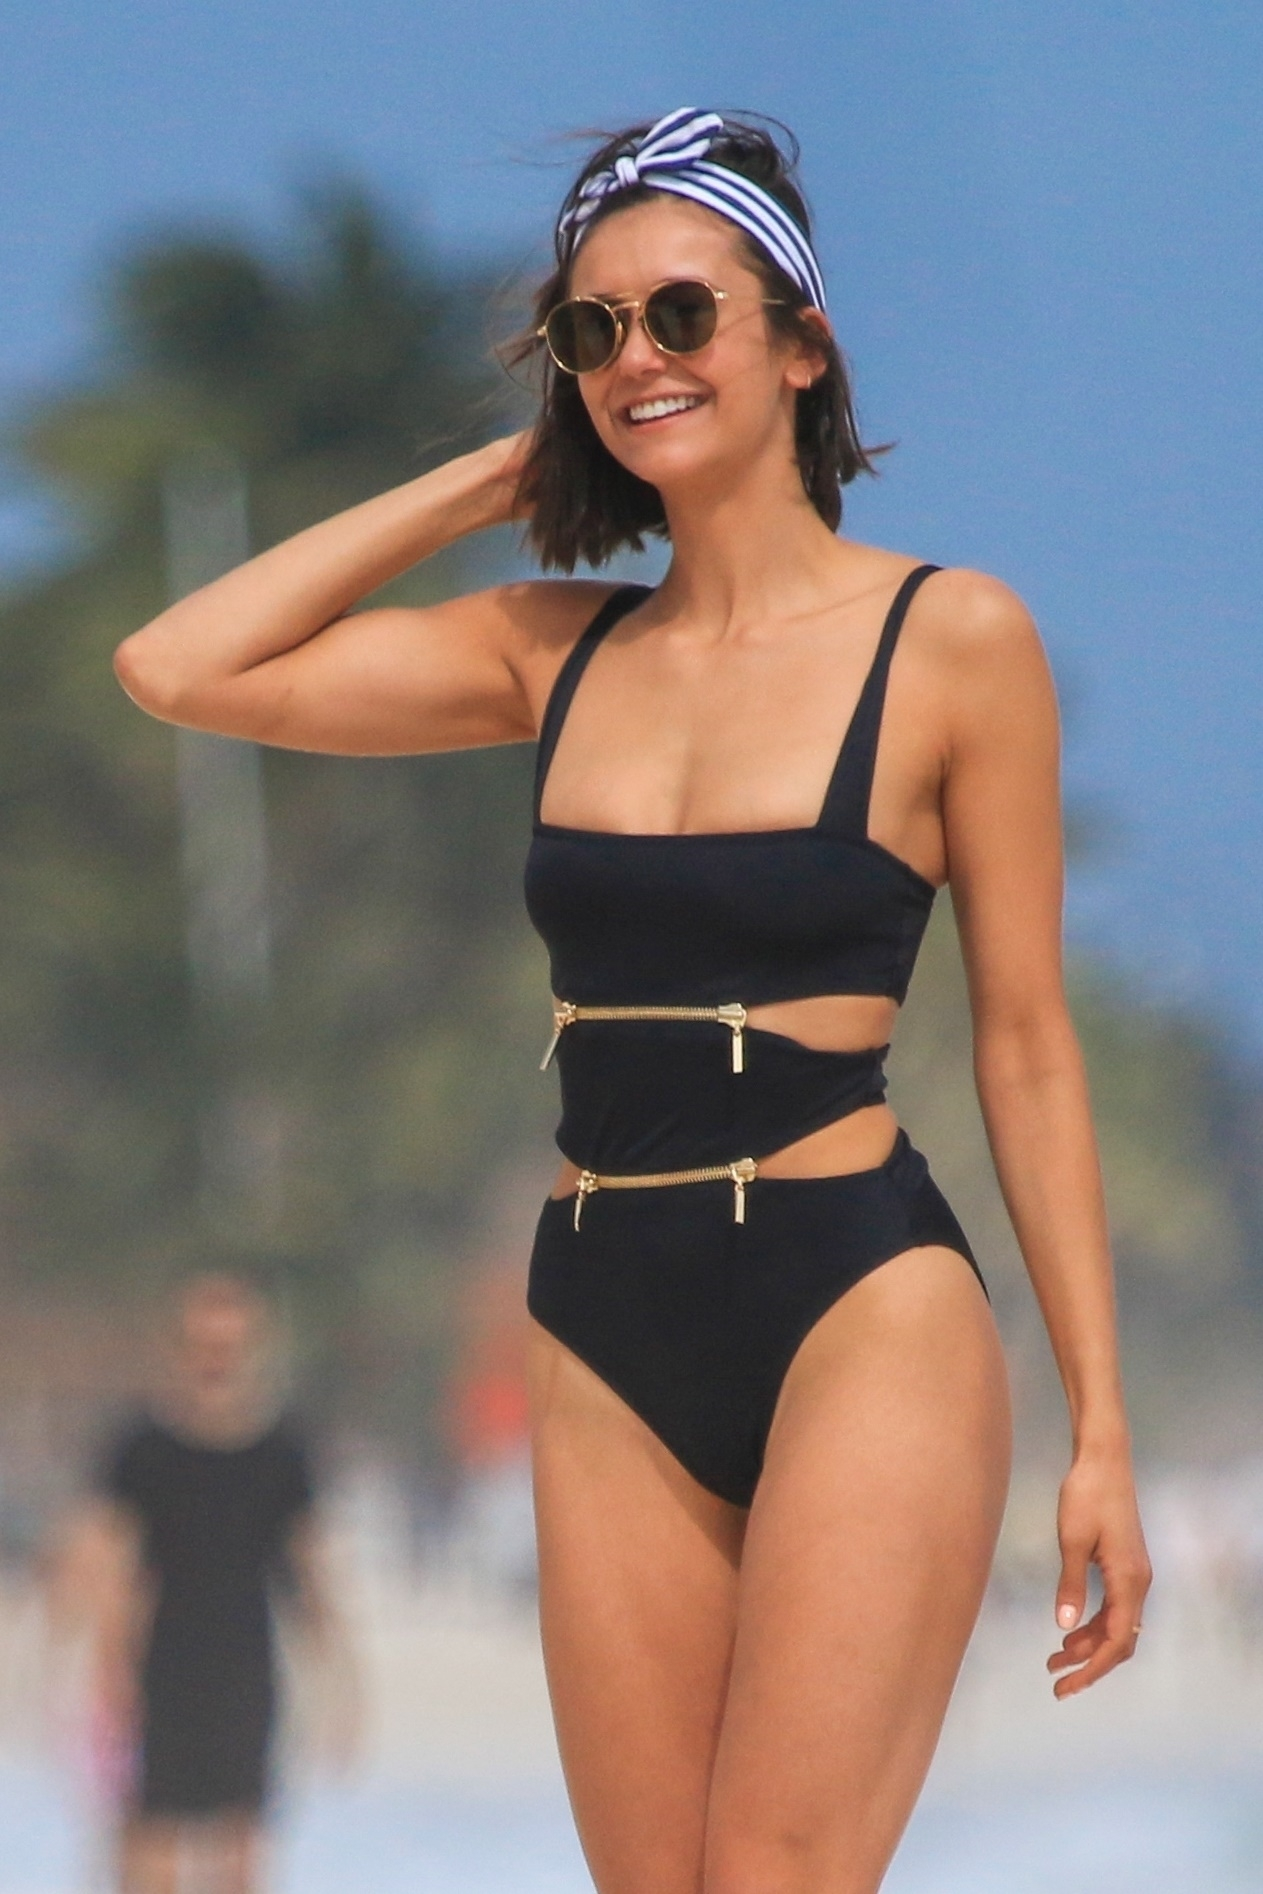 Nina Dobrev shows off her flawless physique in revealing ensembles as she enjoyed the day at the beach in Tulum on Jan. 20, 2018.